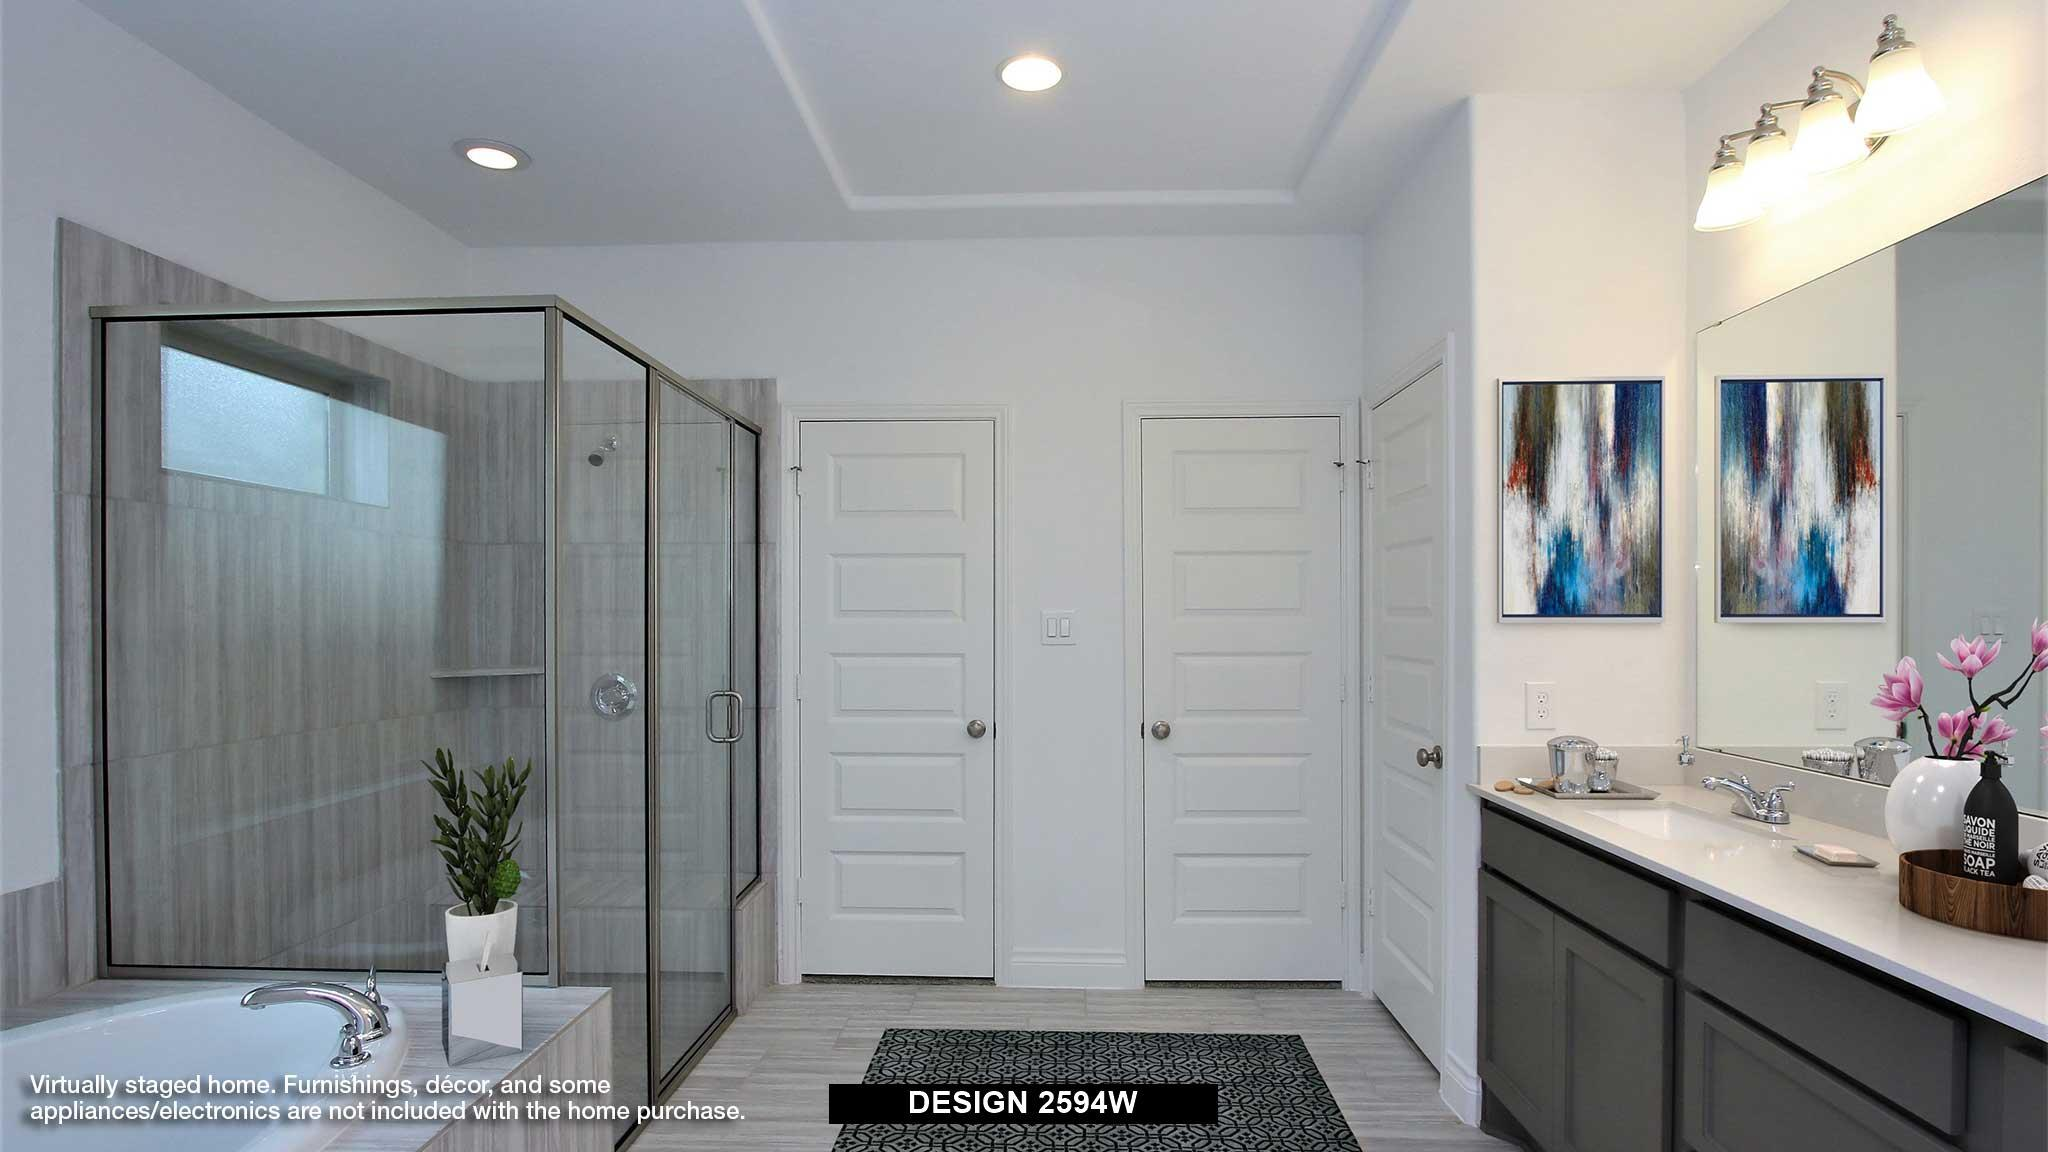 Bathroom featured in the 2594W By Perry Homes in Dallas, TX